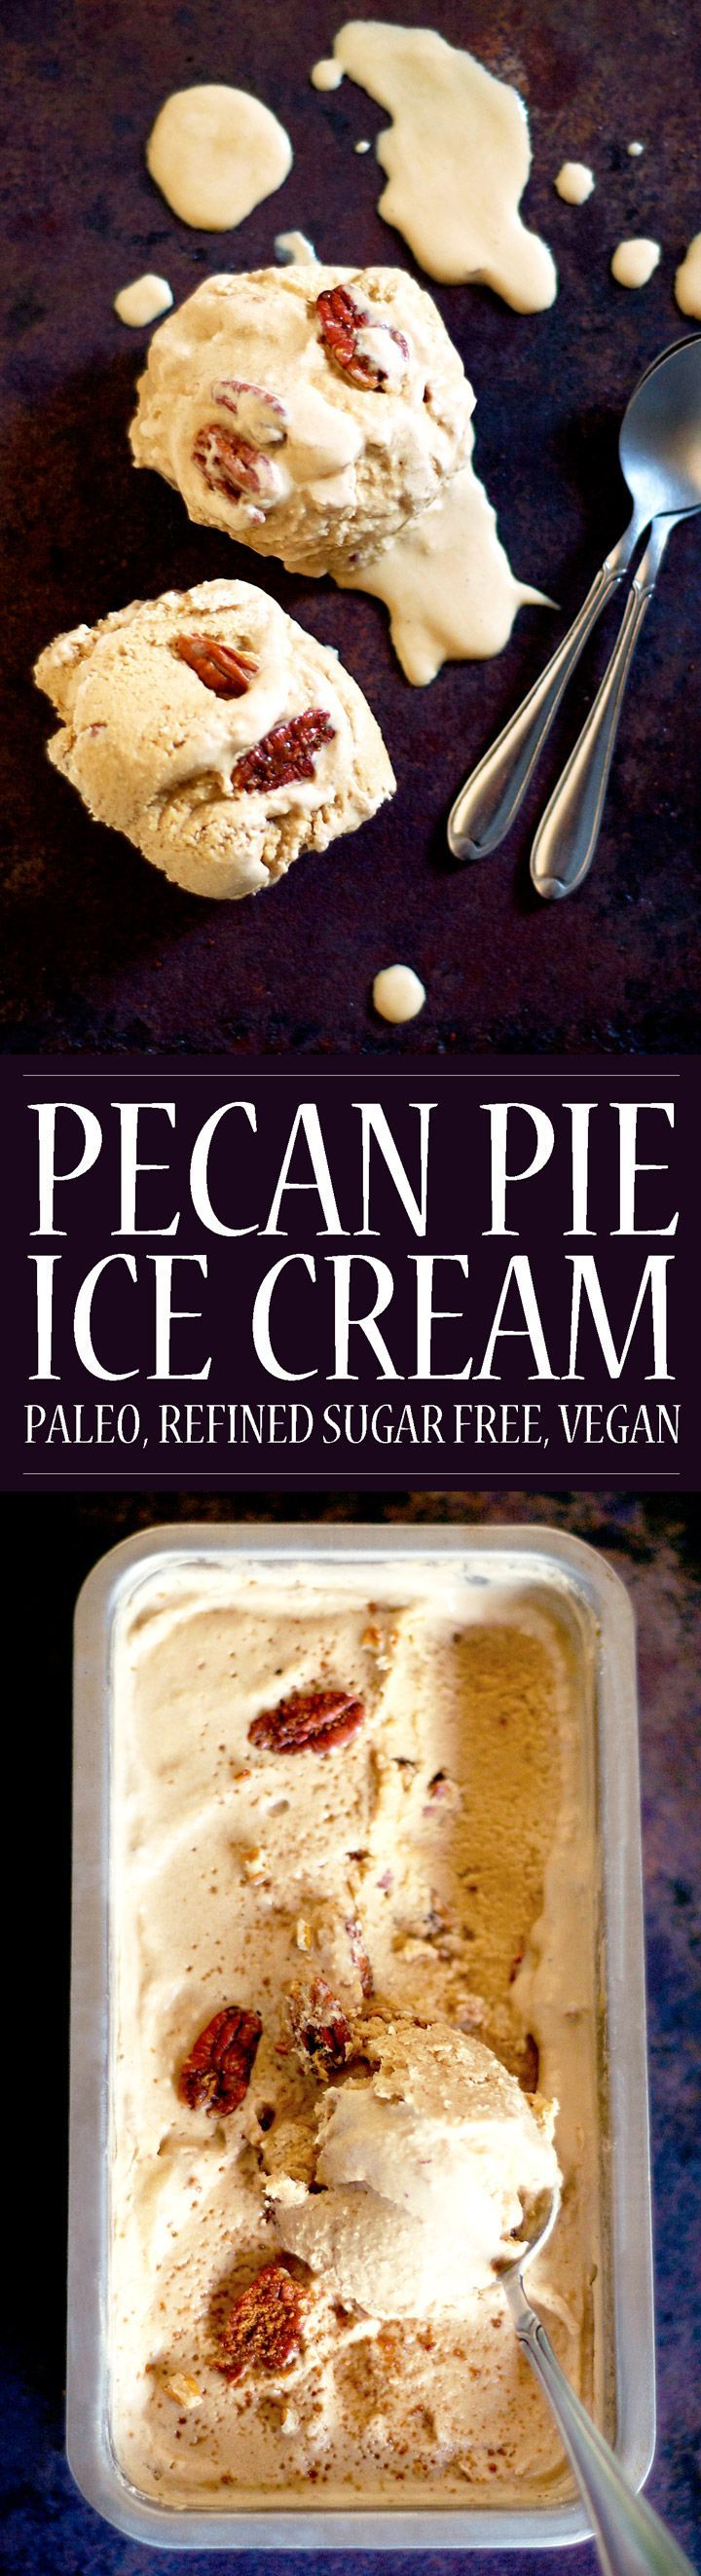 http://www.phomz.com/category/Ice-Cream-Maker/ Pecan Pie Ice Cream! Vegan, paleo and refined sugar free! A healthier treat for Thanksgiving or otherwise! Super easy with or without an ice cream maker.